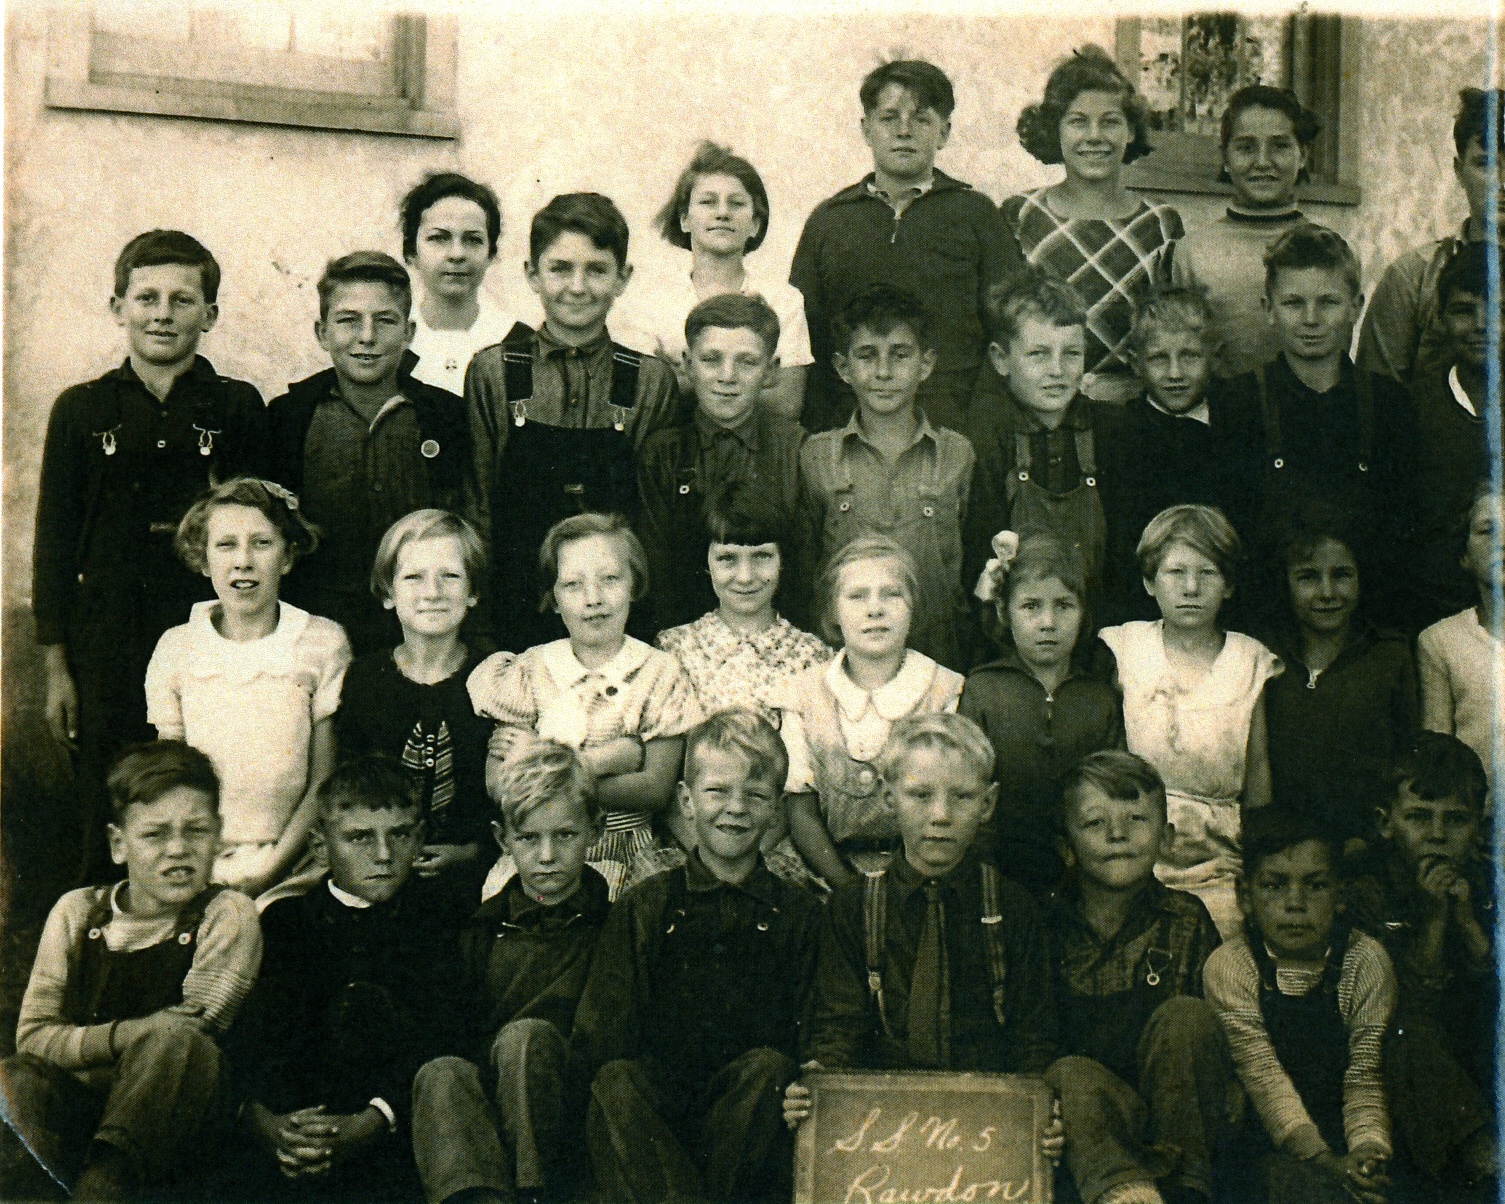 Milt Campbell...3rd / middle row second from left, Wanda McInroy top right last girl.,   Murray McInroy, brother of Wanda second row from top at the end.(.can only see half his face)